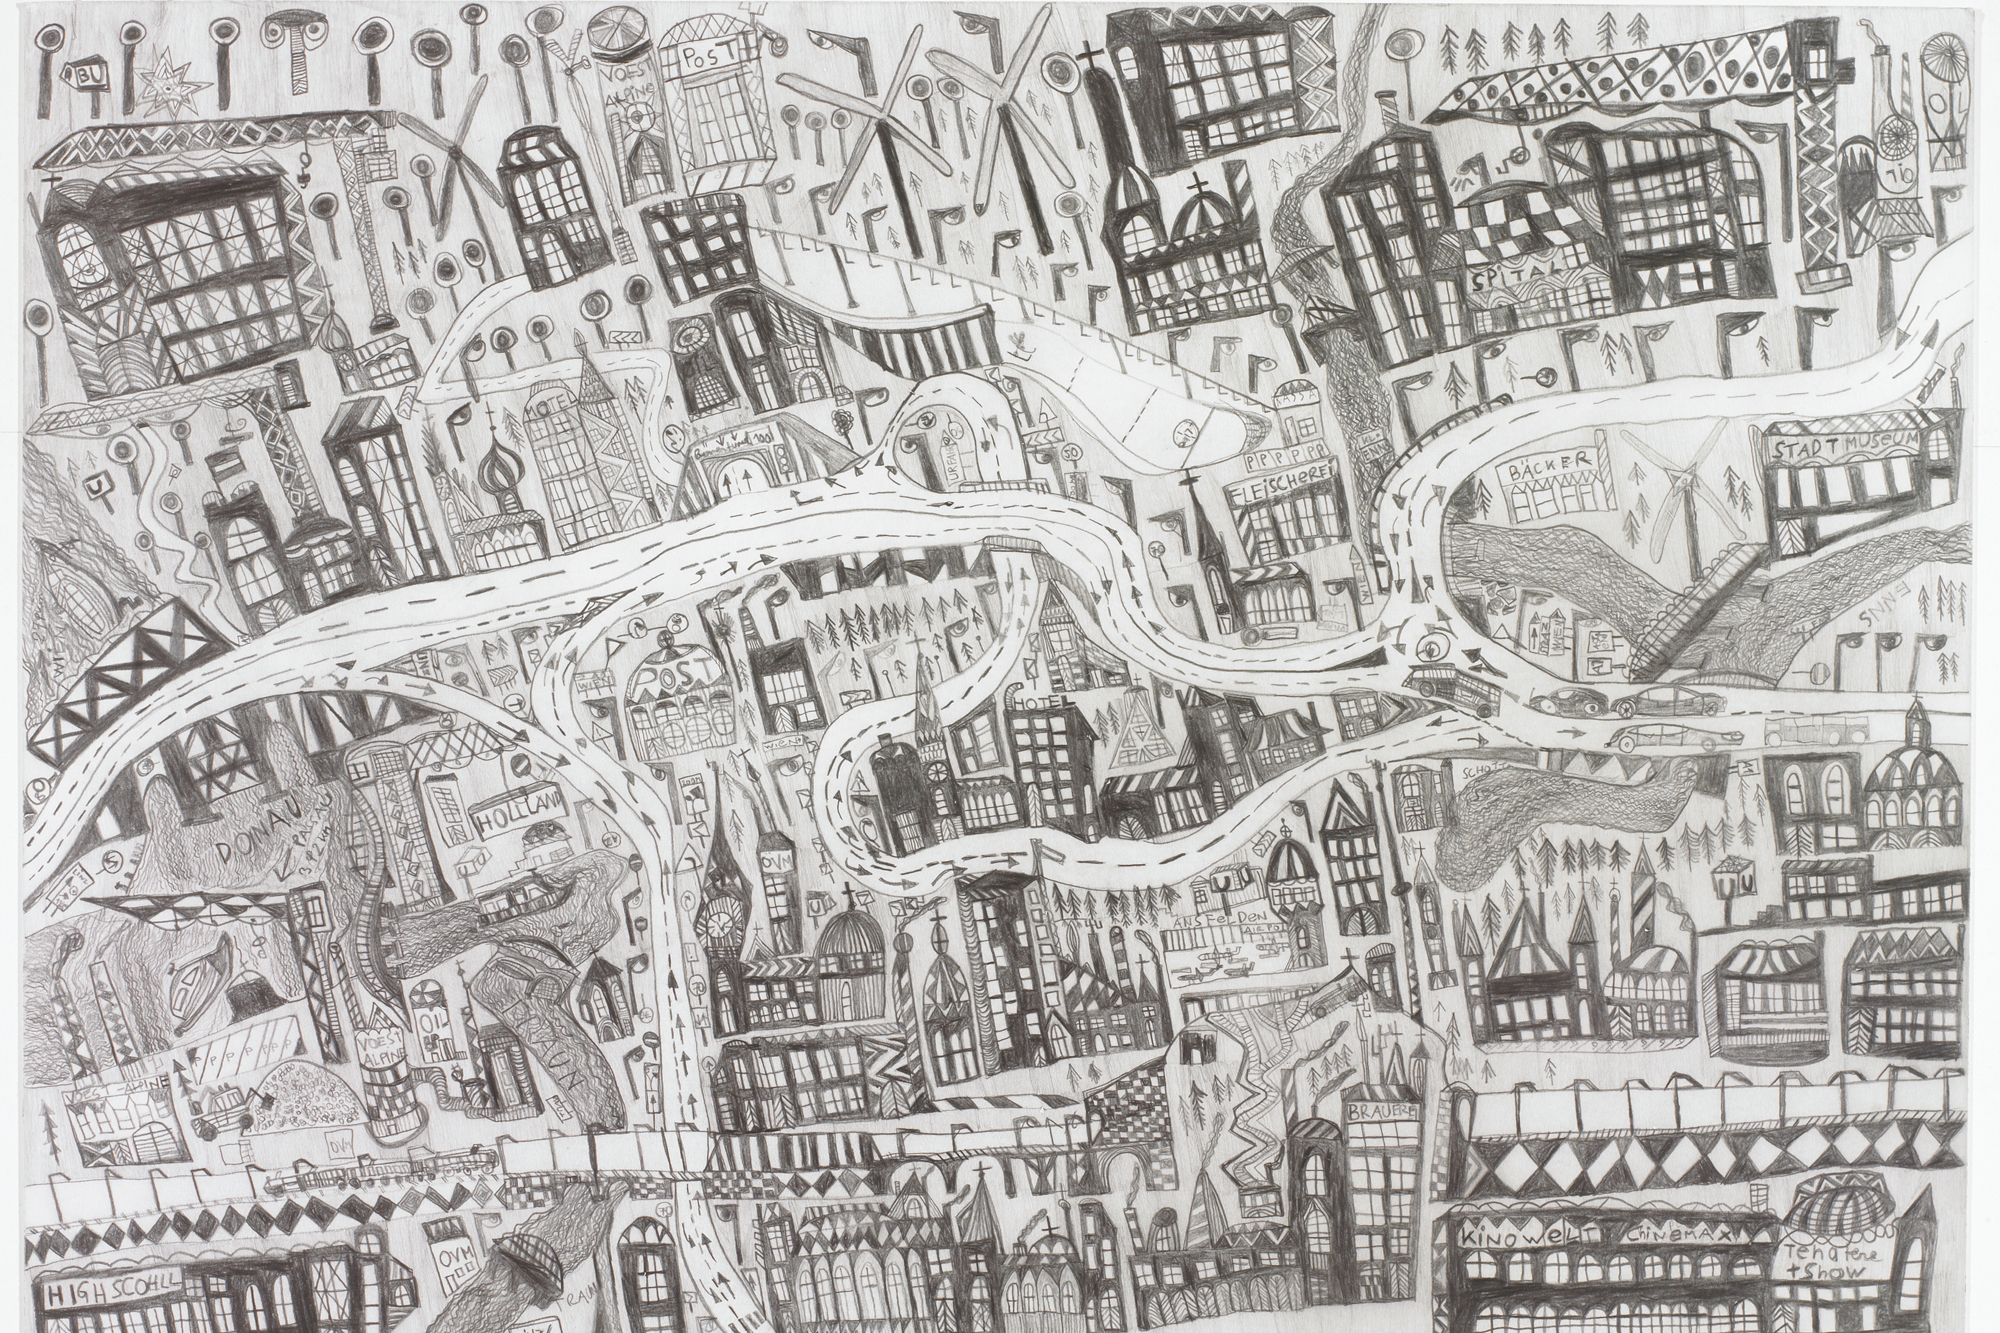 Leonhard Fink, The map of the city of Linz in Upper Austria, 2014 © galerie gugging